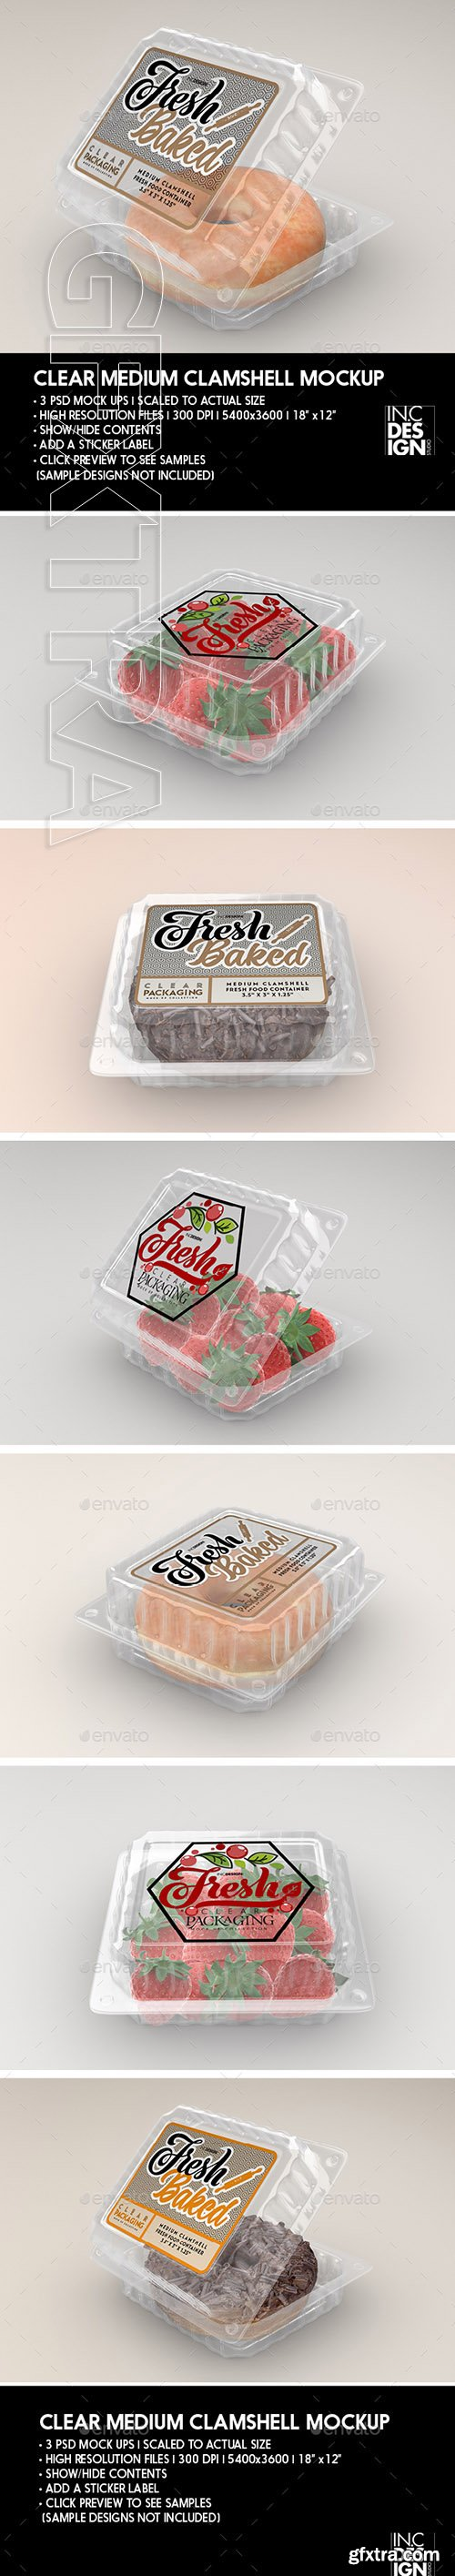 GR - ClearMedium Clamshell Packaging Mockup 22071957